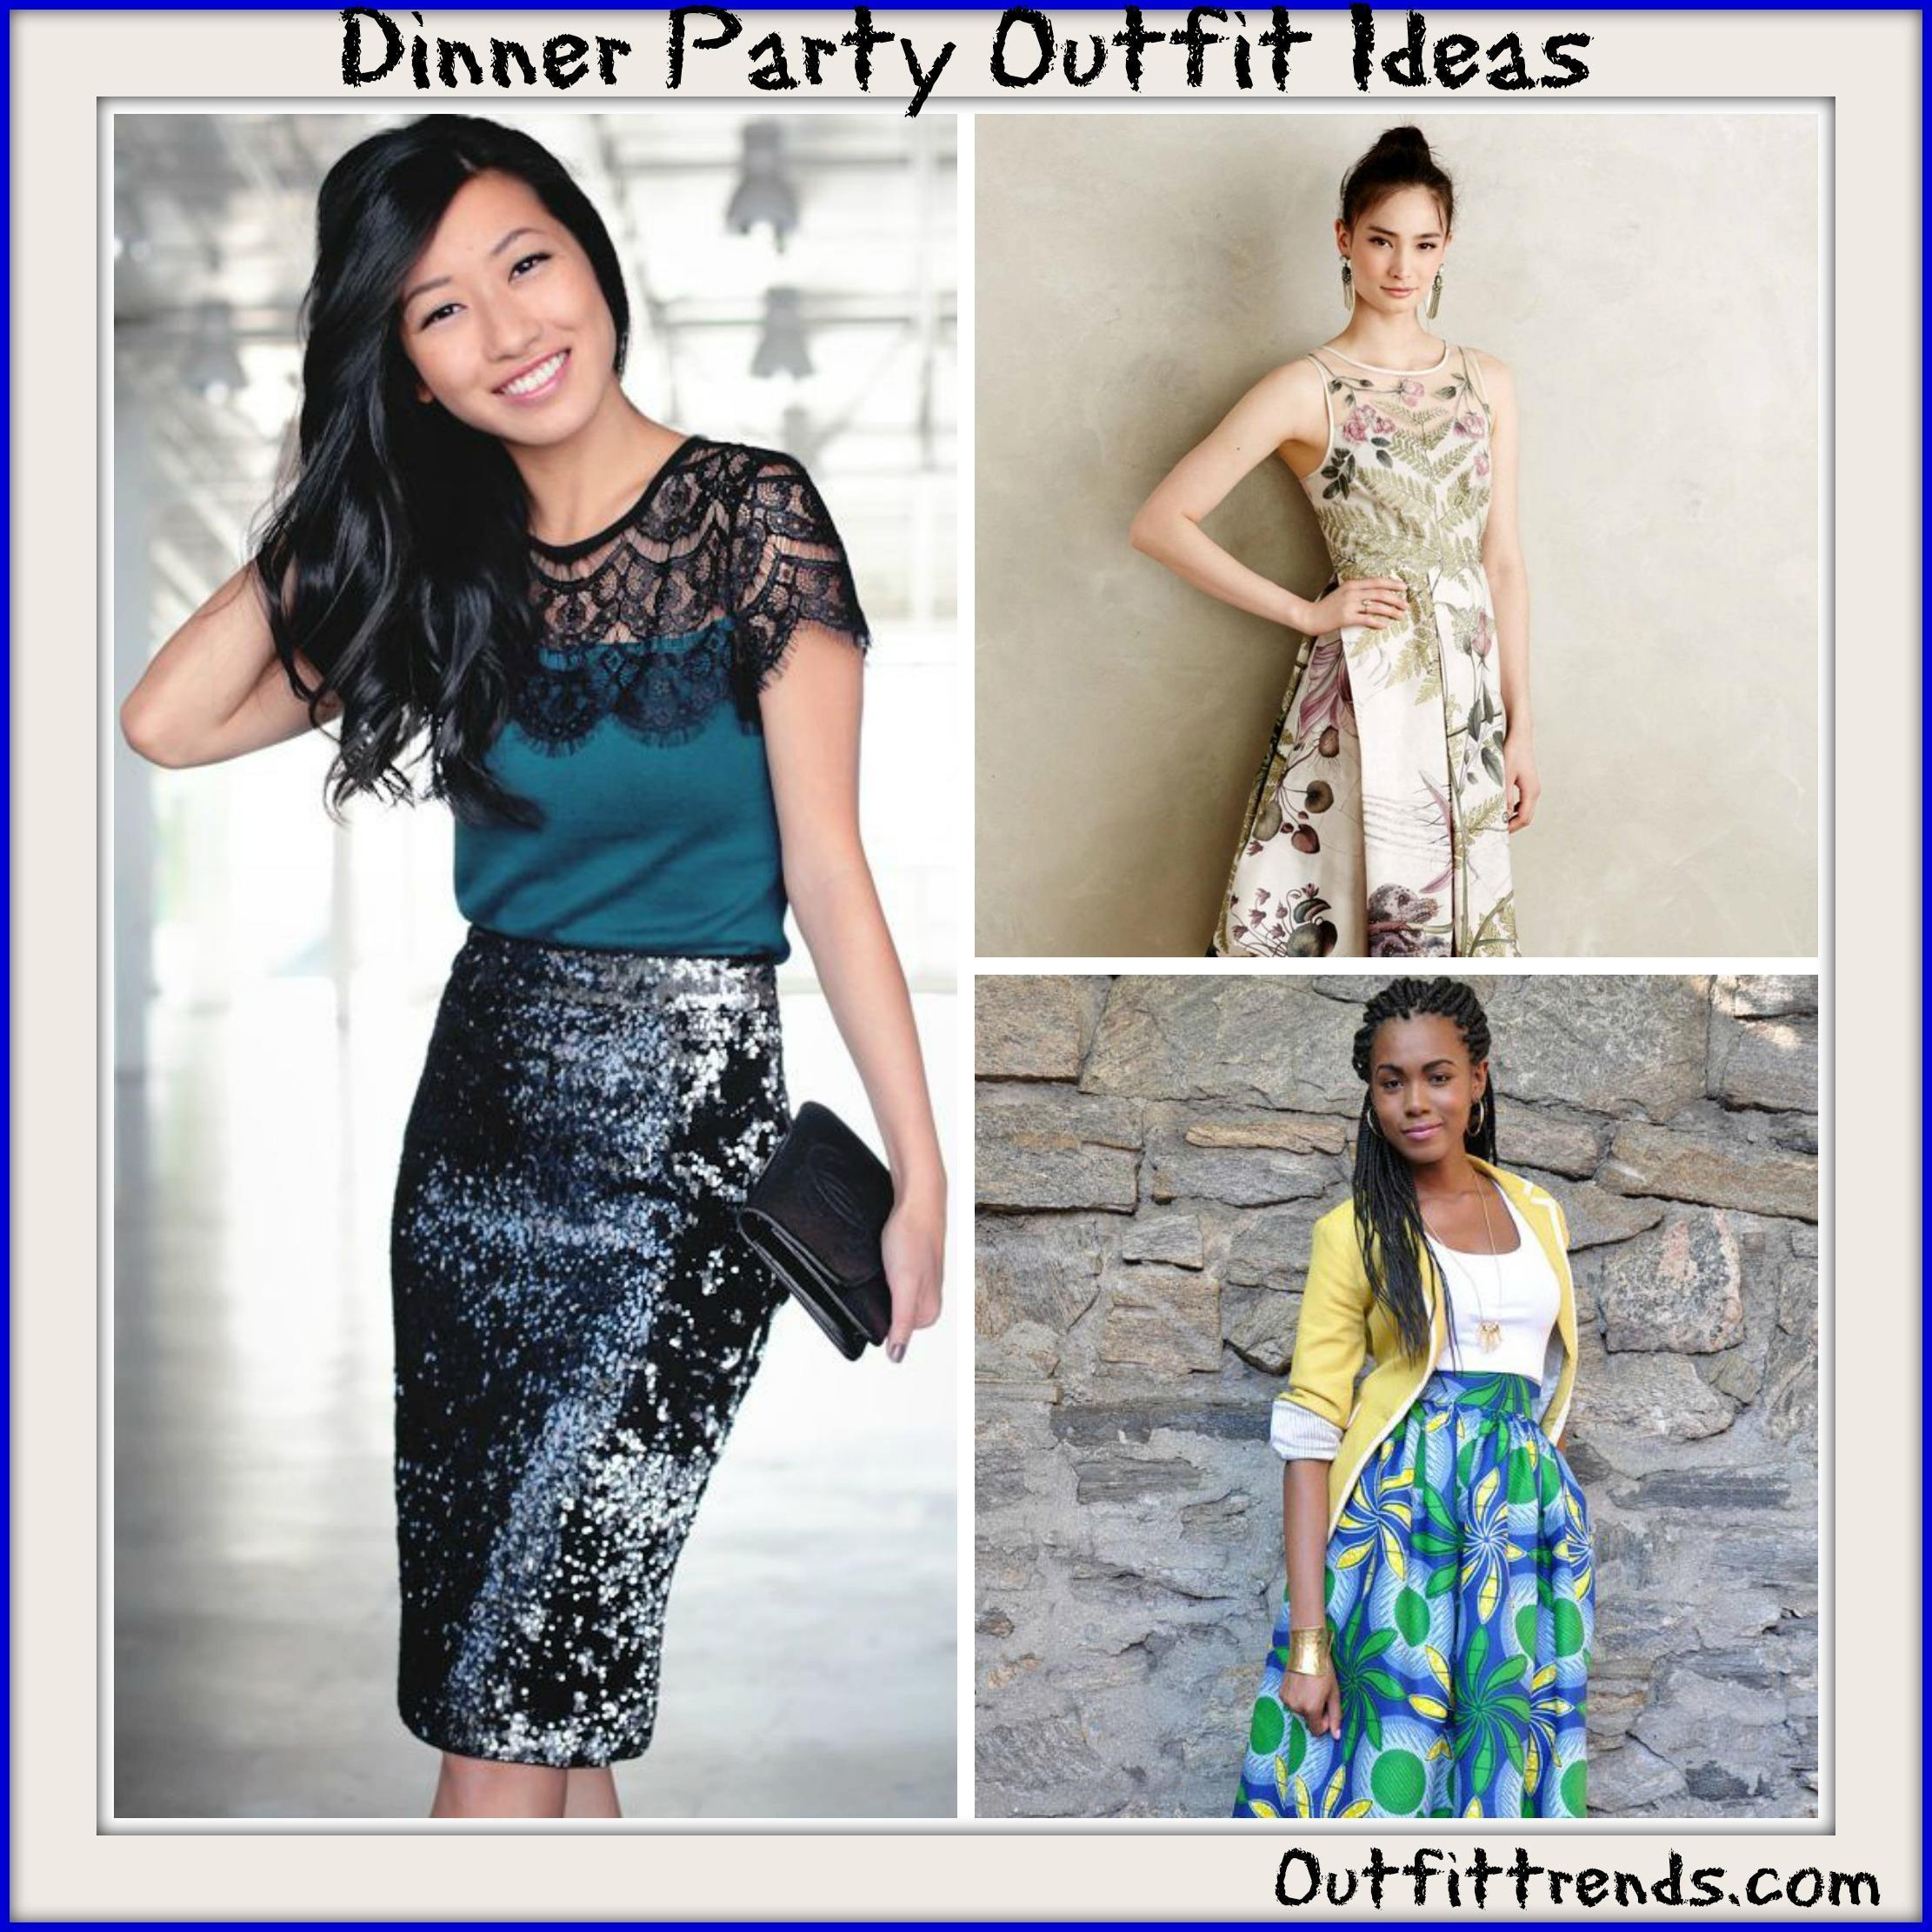 Marvelous Dinner Party Outfit Ideas Part - 7: Dinner Party Outfits-18 Ideas What To Wear To A Dinner Party